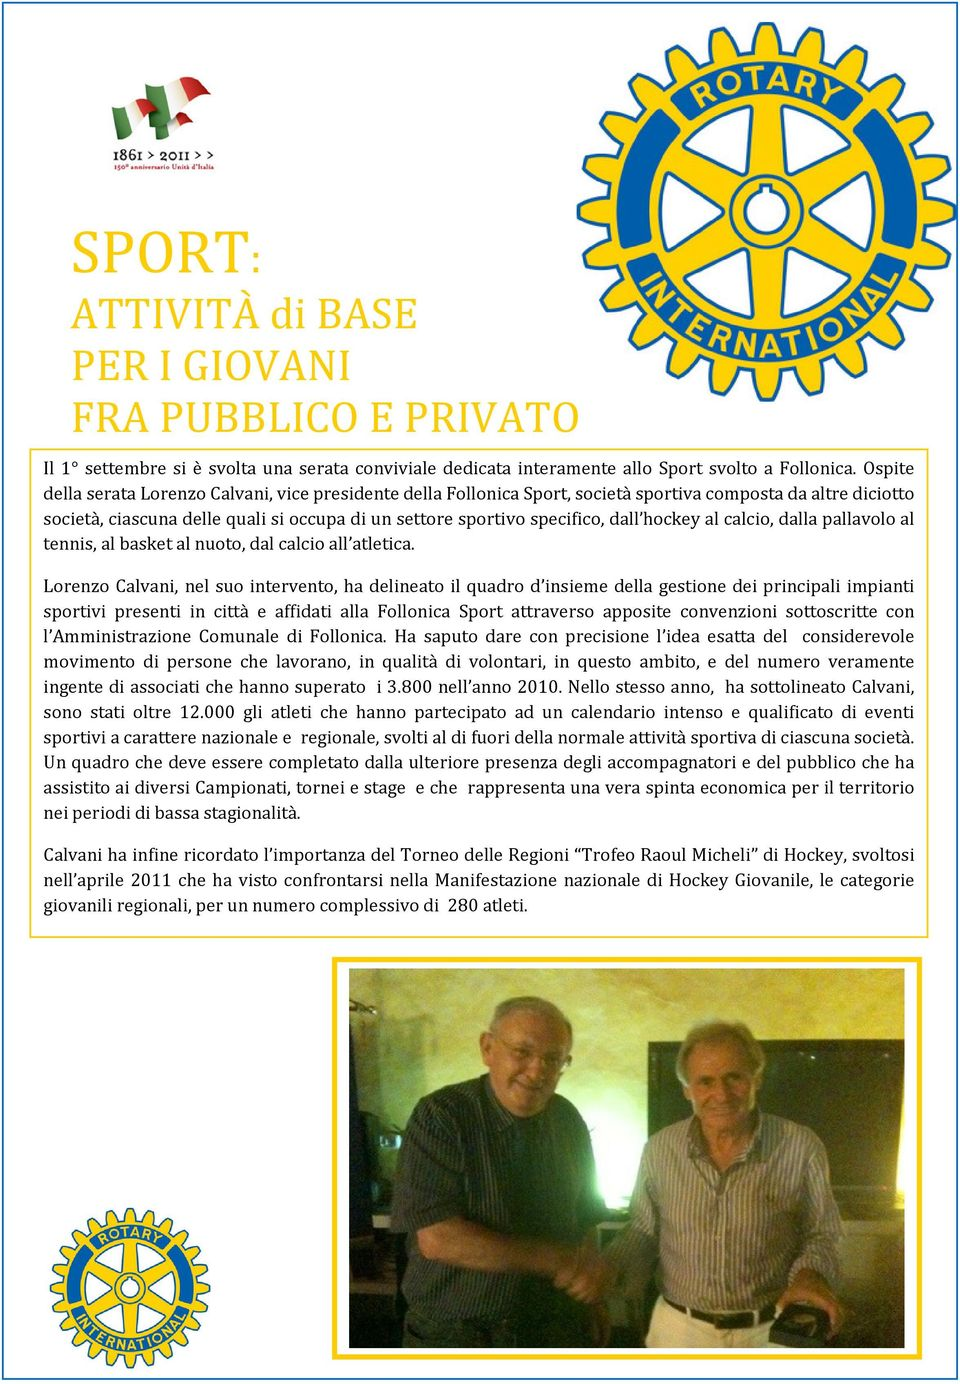 hockey al calcio, dalla pallavolo al tennis, al basket al nuoto, dal calcio all atletica.